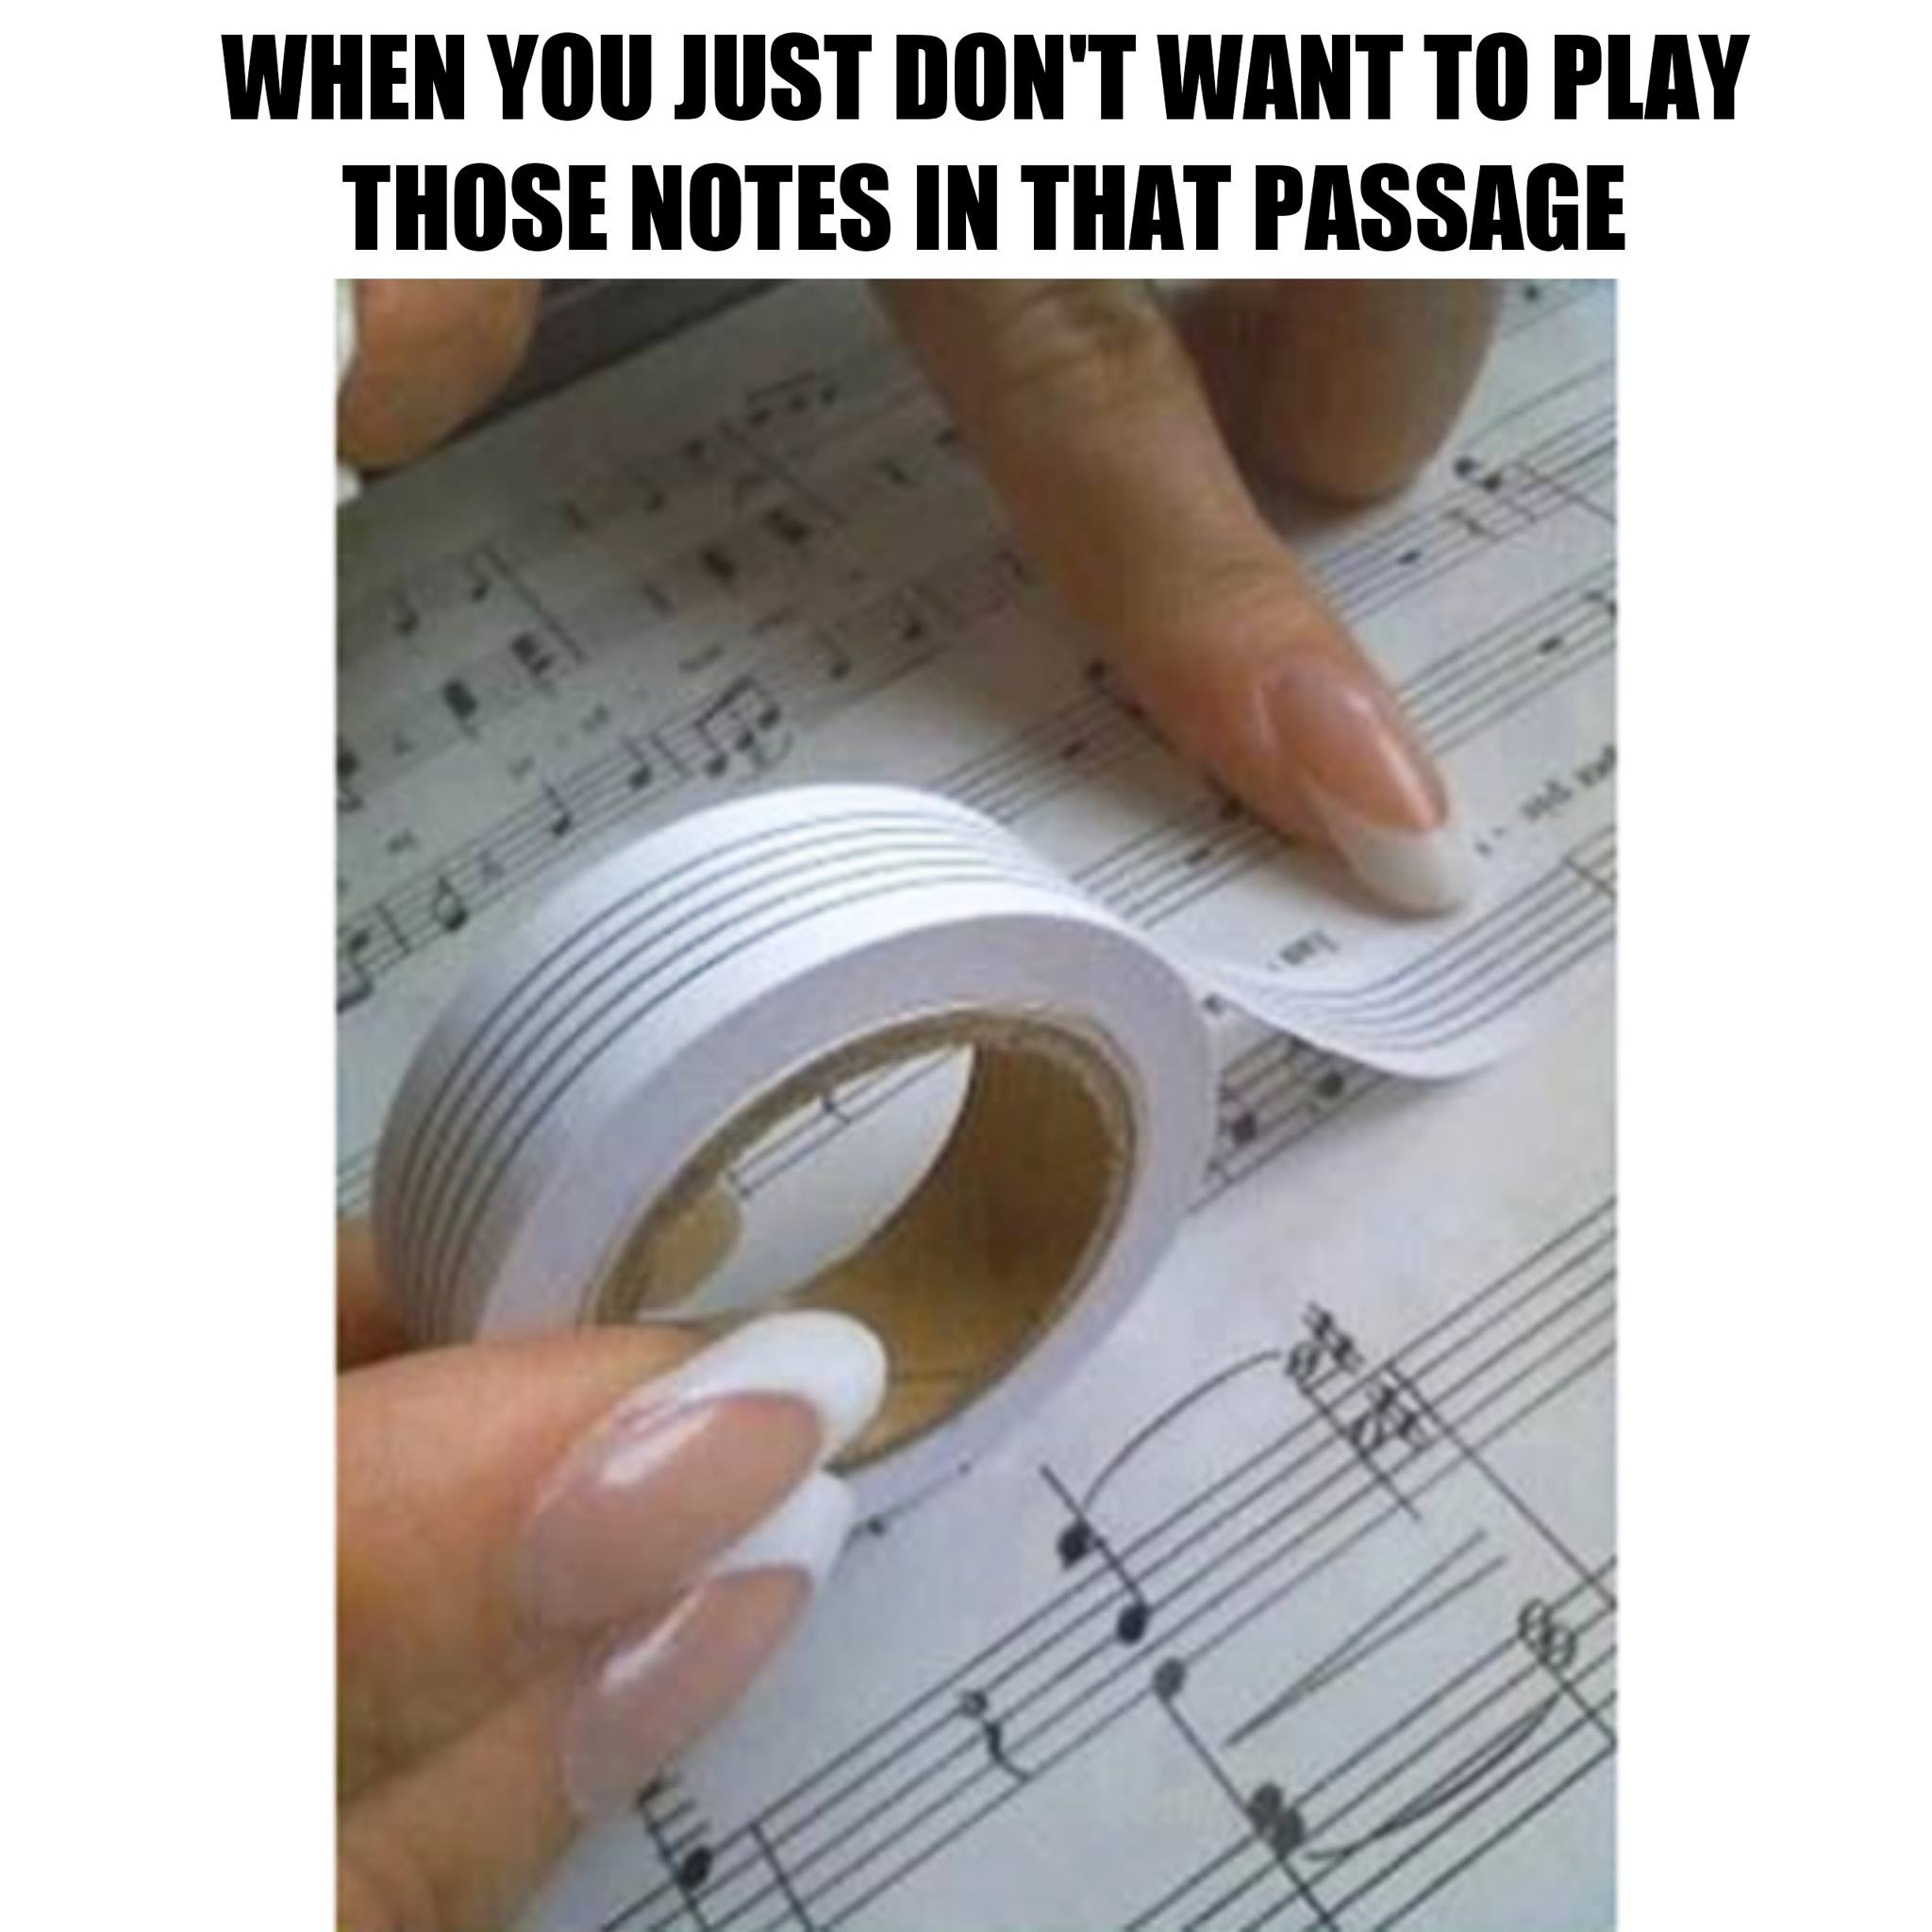 don't want to play the notes